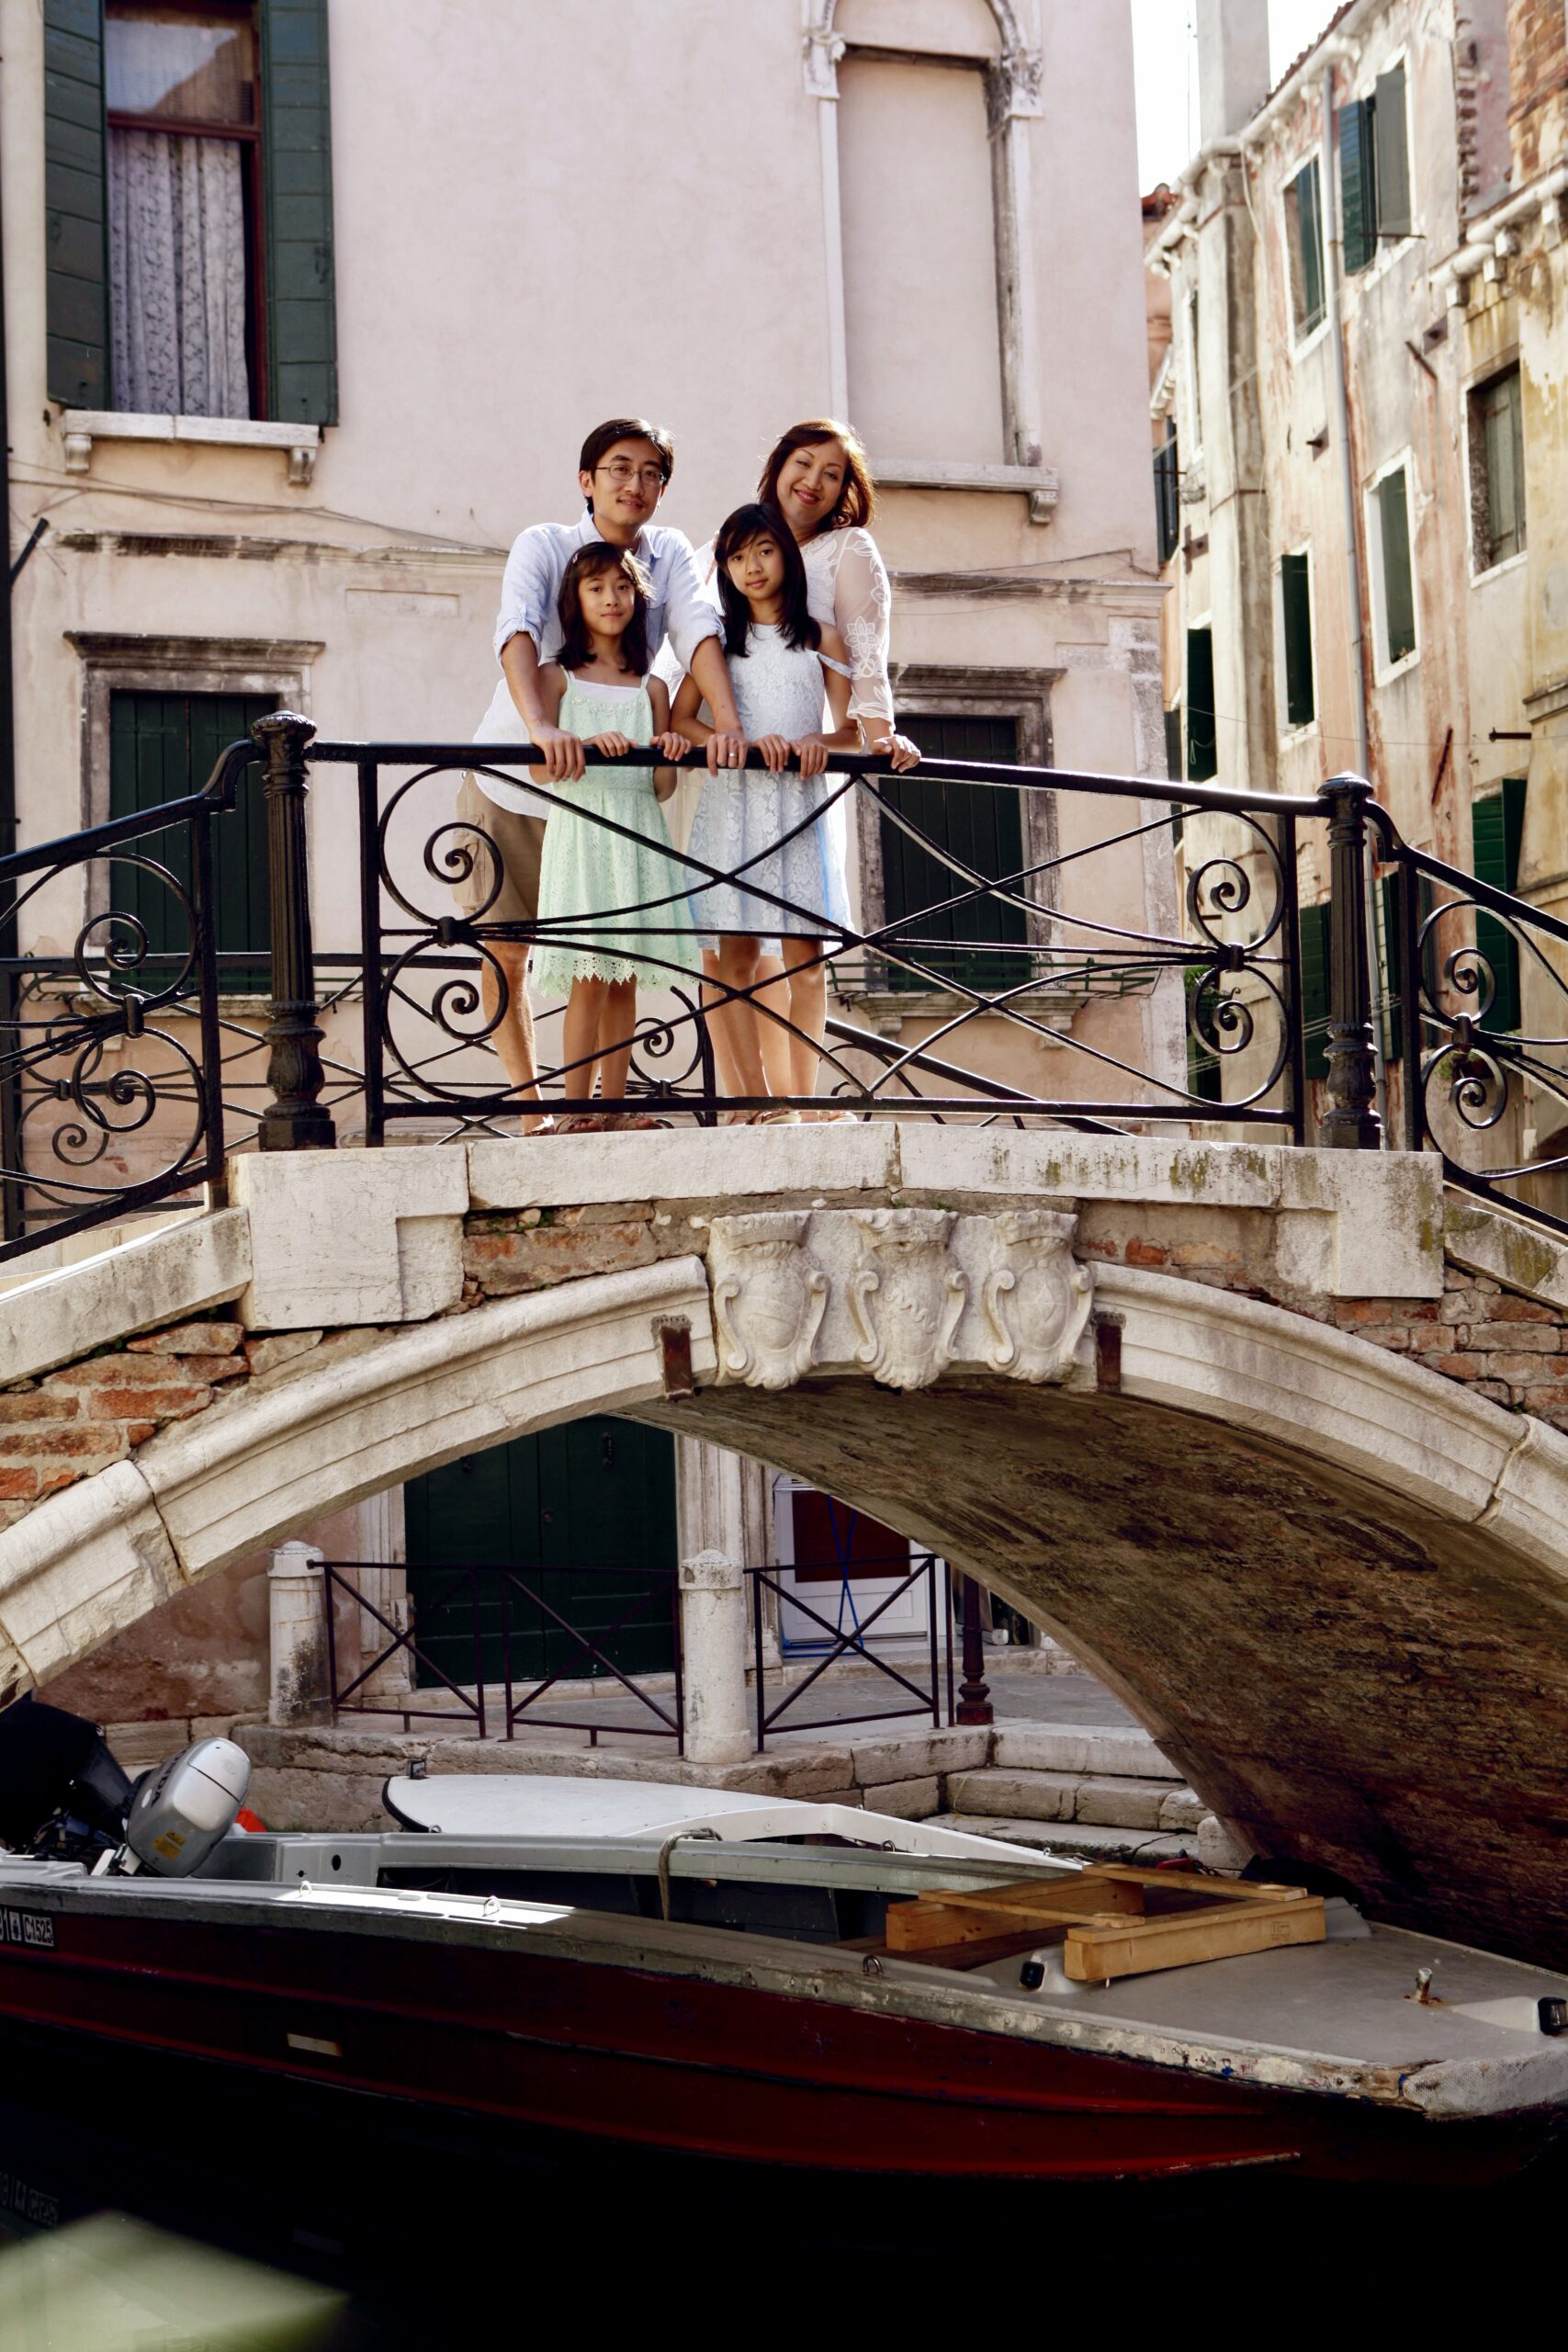 Travel to Venice: 3 Tips for Shopping for Experiences